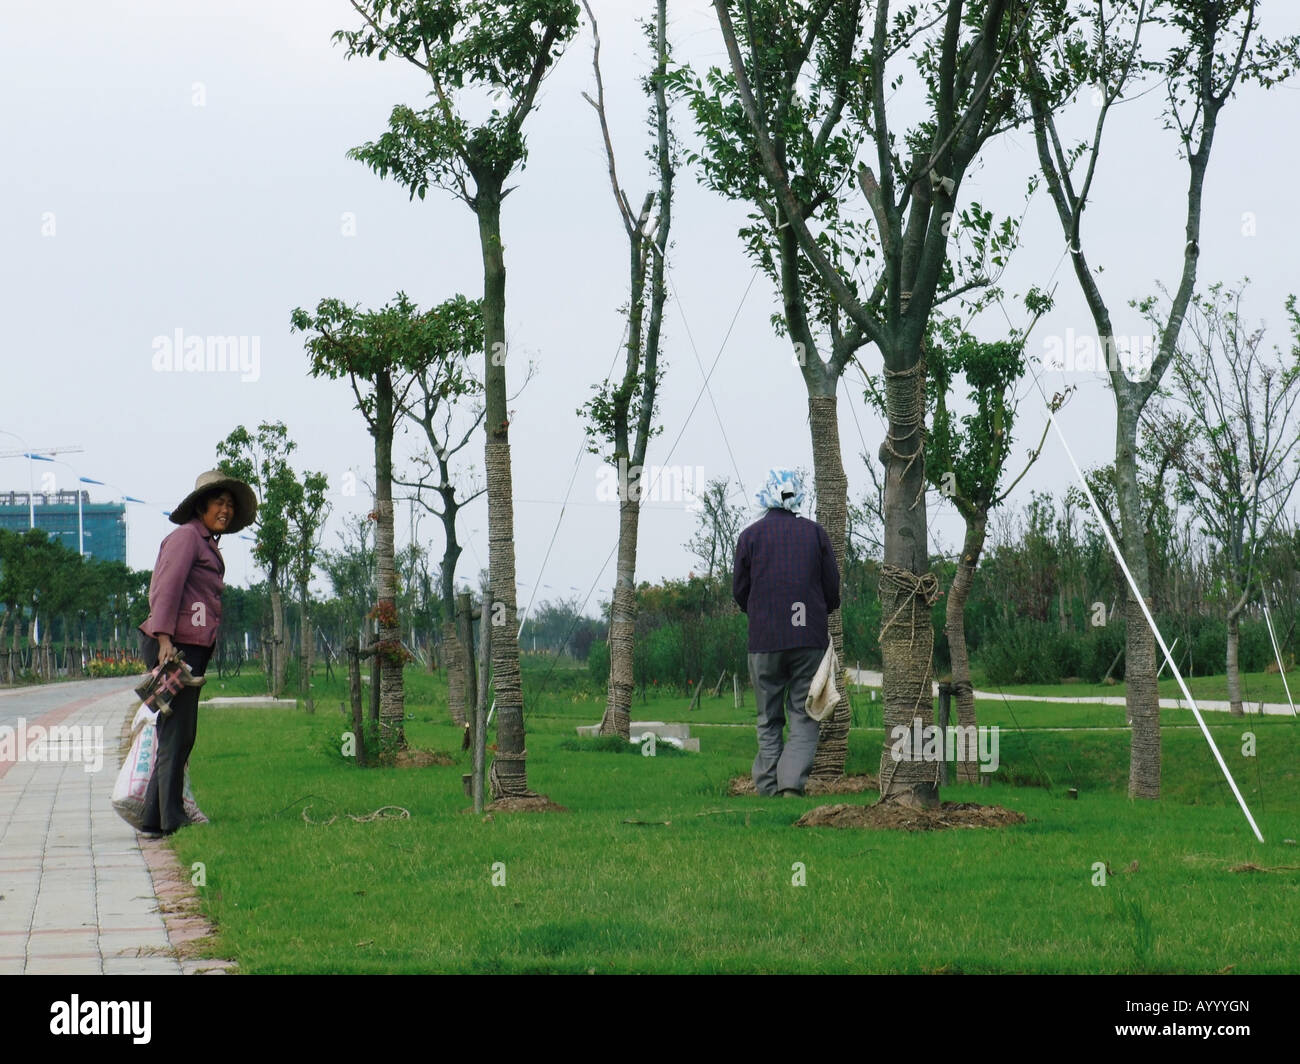 Gardeners between trees in Lingang New City near Shanghai China Stock Photo